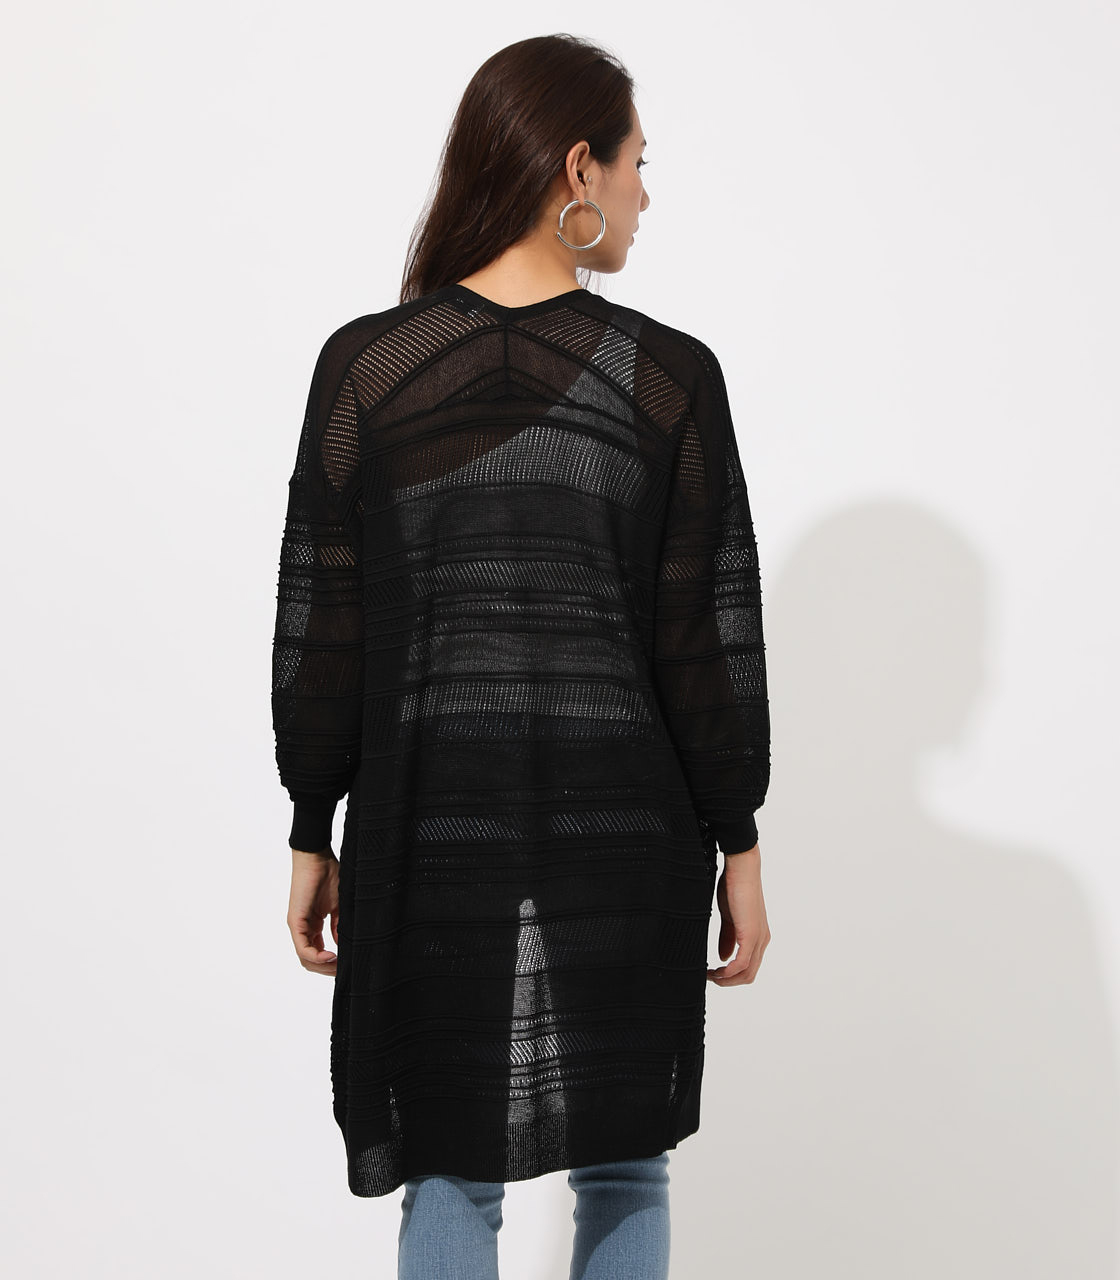 SHADOW BORDER KNIT CARDIGAN 詳細画像 BLK 6